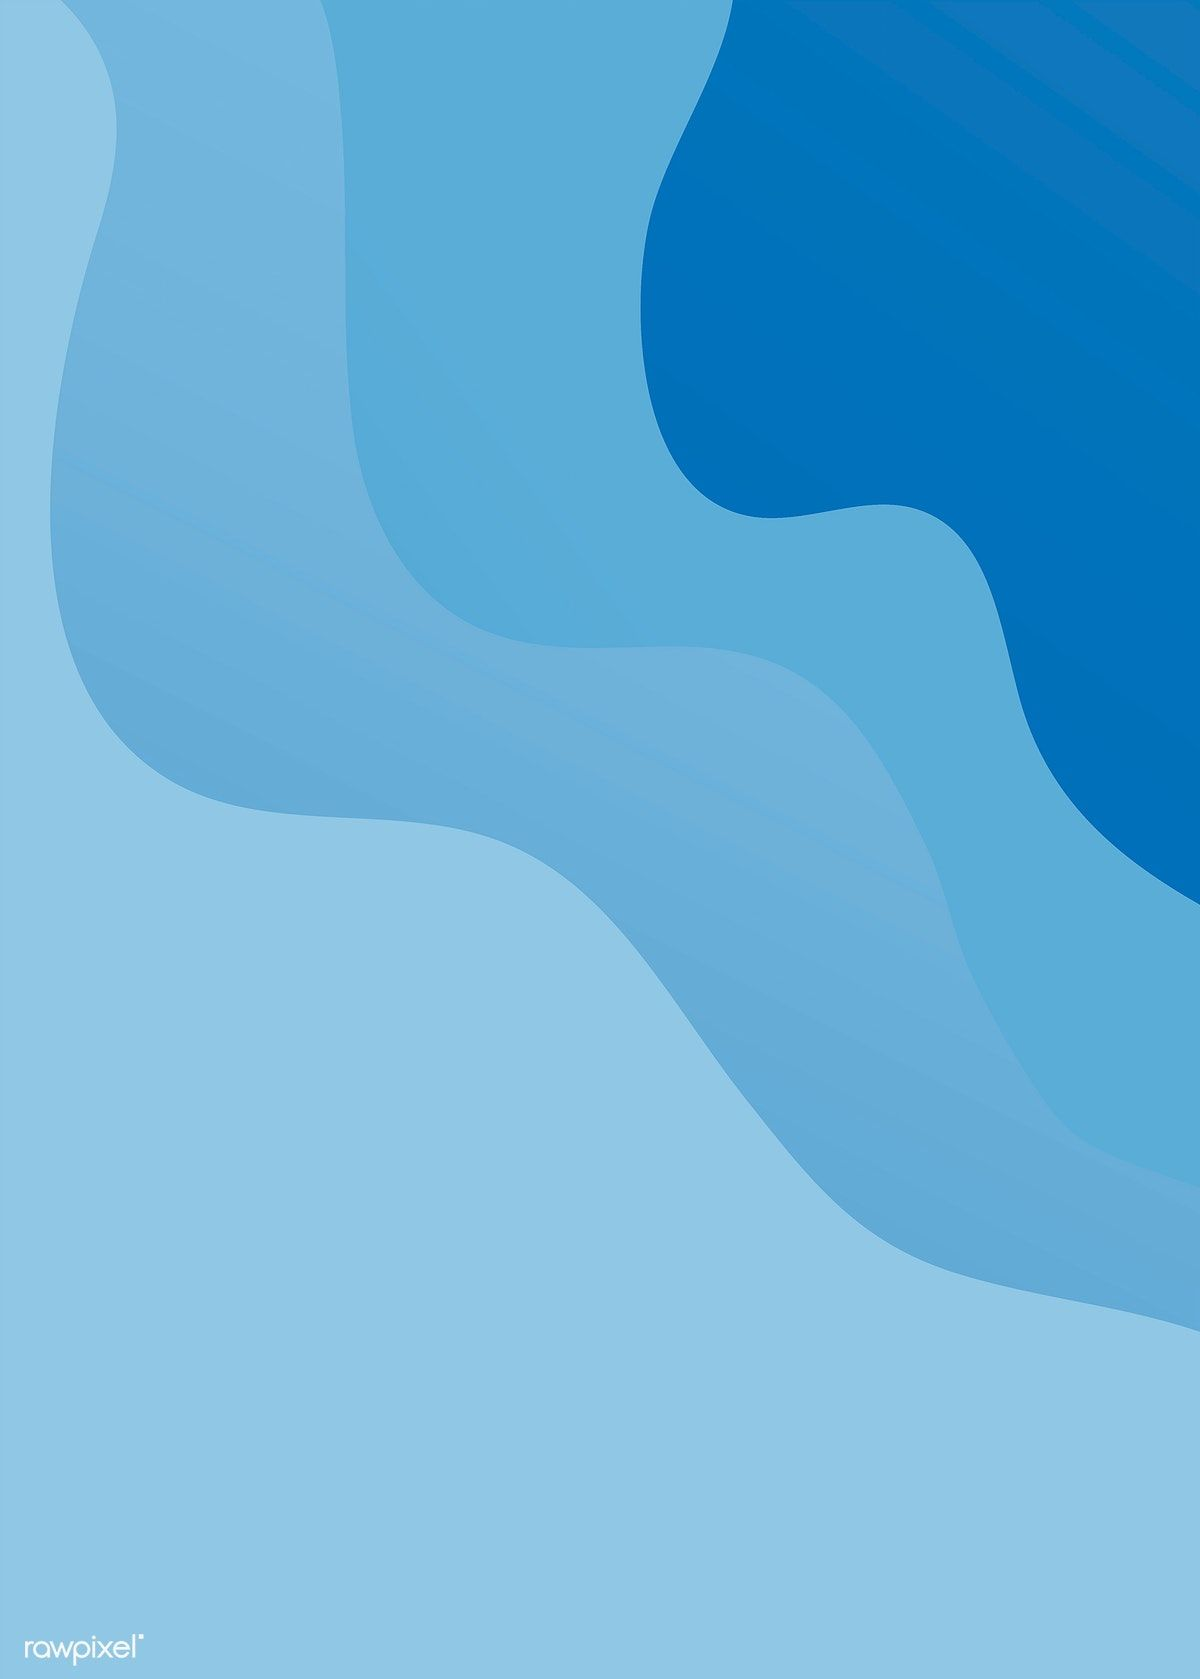 Blue Flowing Abstract Background Vector Free Image By Rawpixel Com Aum Abstract Backgrounds Artsy Background Vector Free